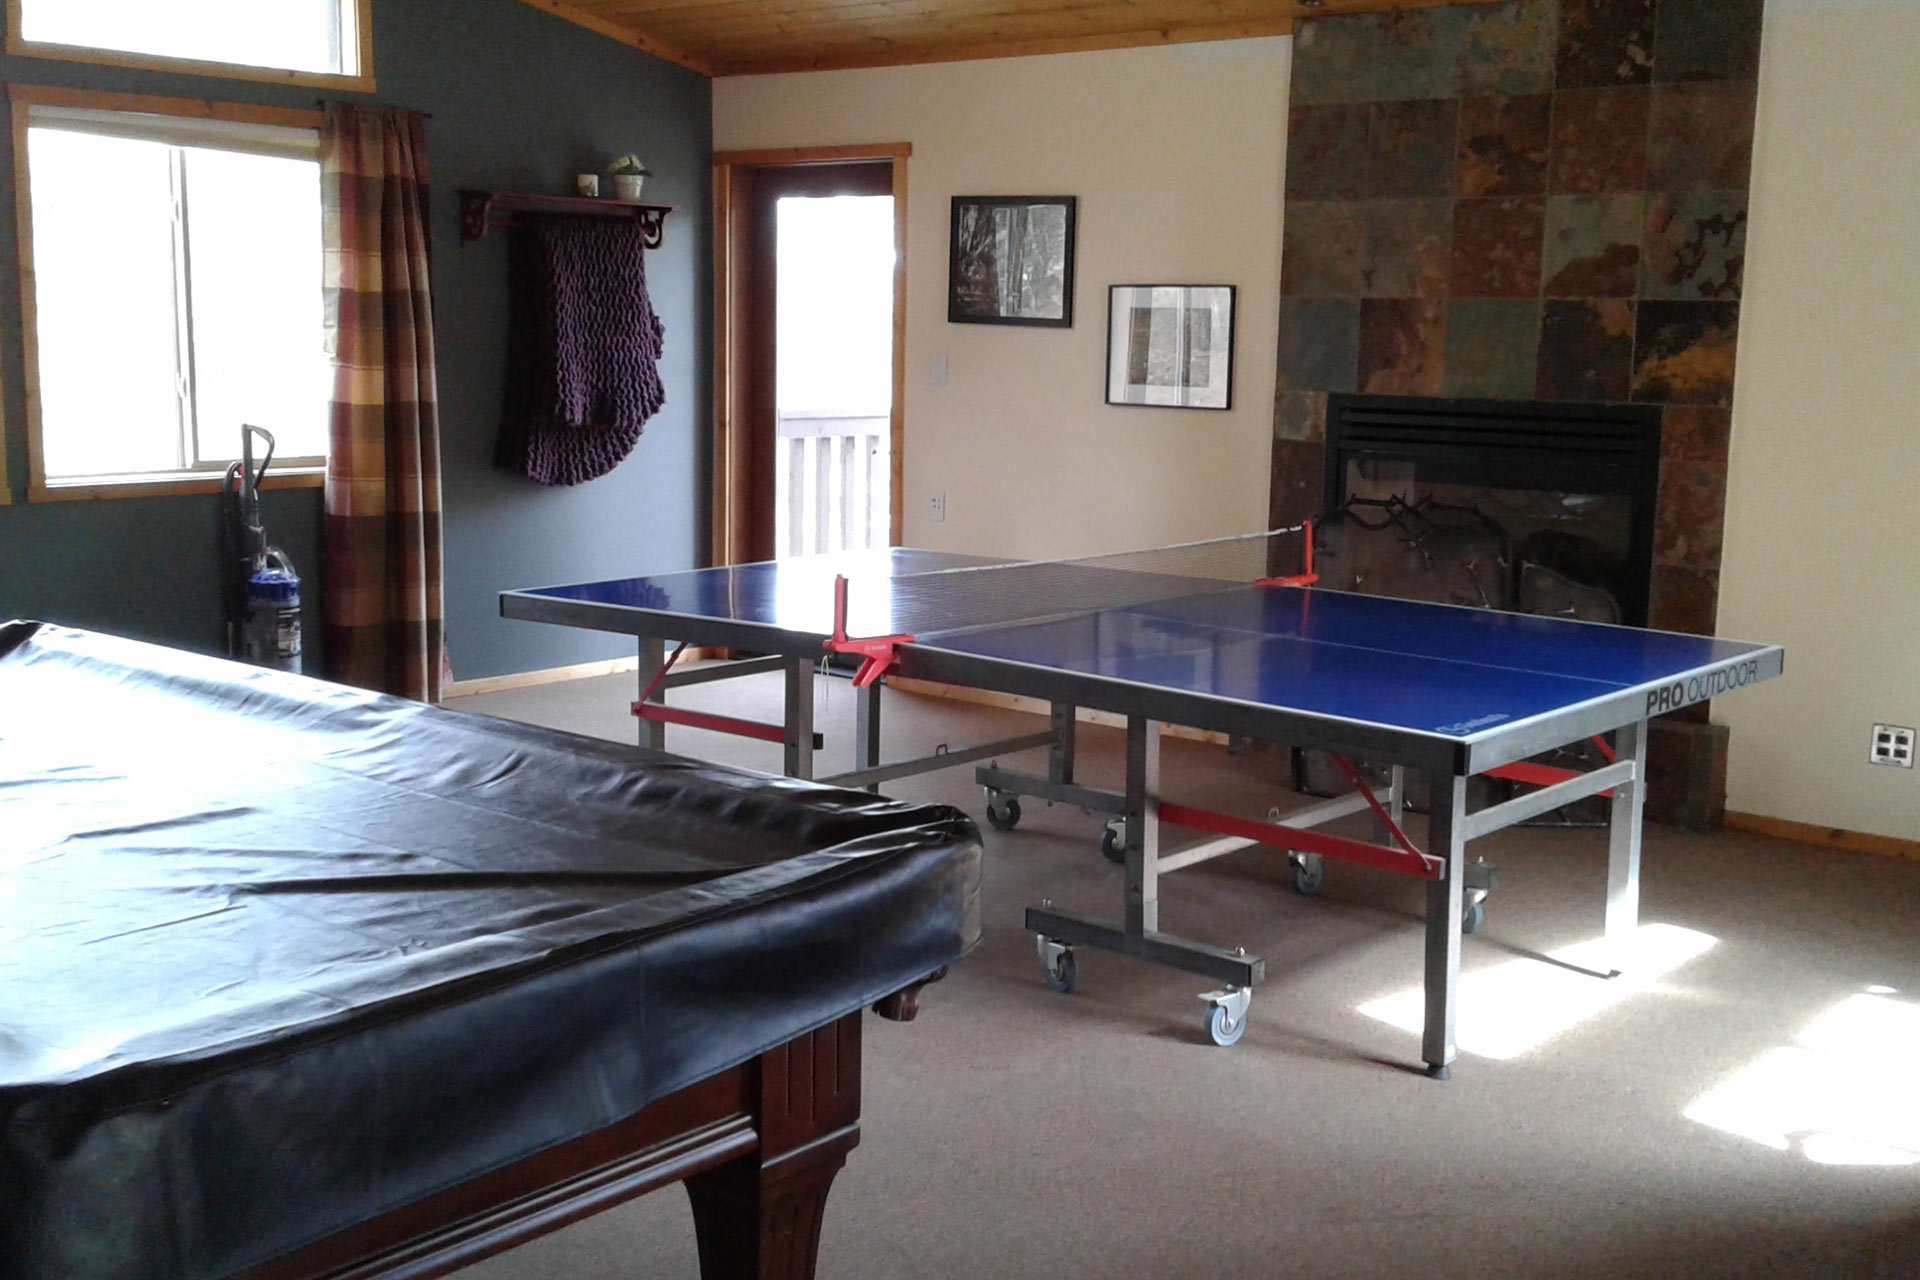 Pool table and table tennis in the Knickerbocker Mansion Recreation room